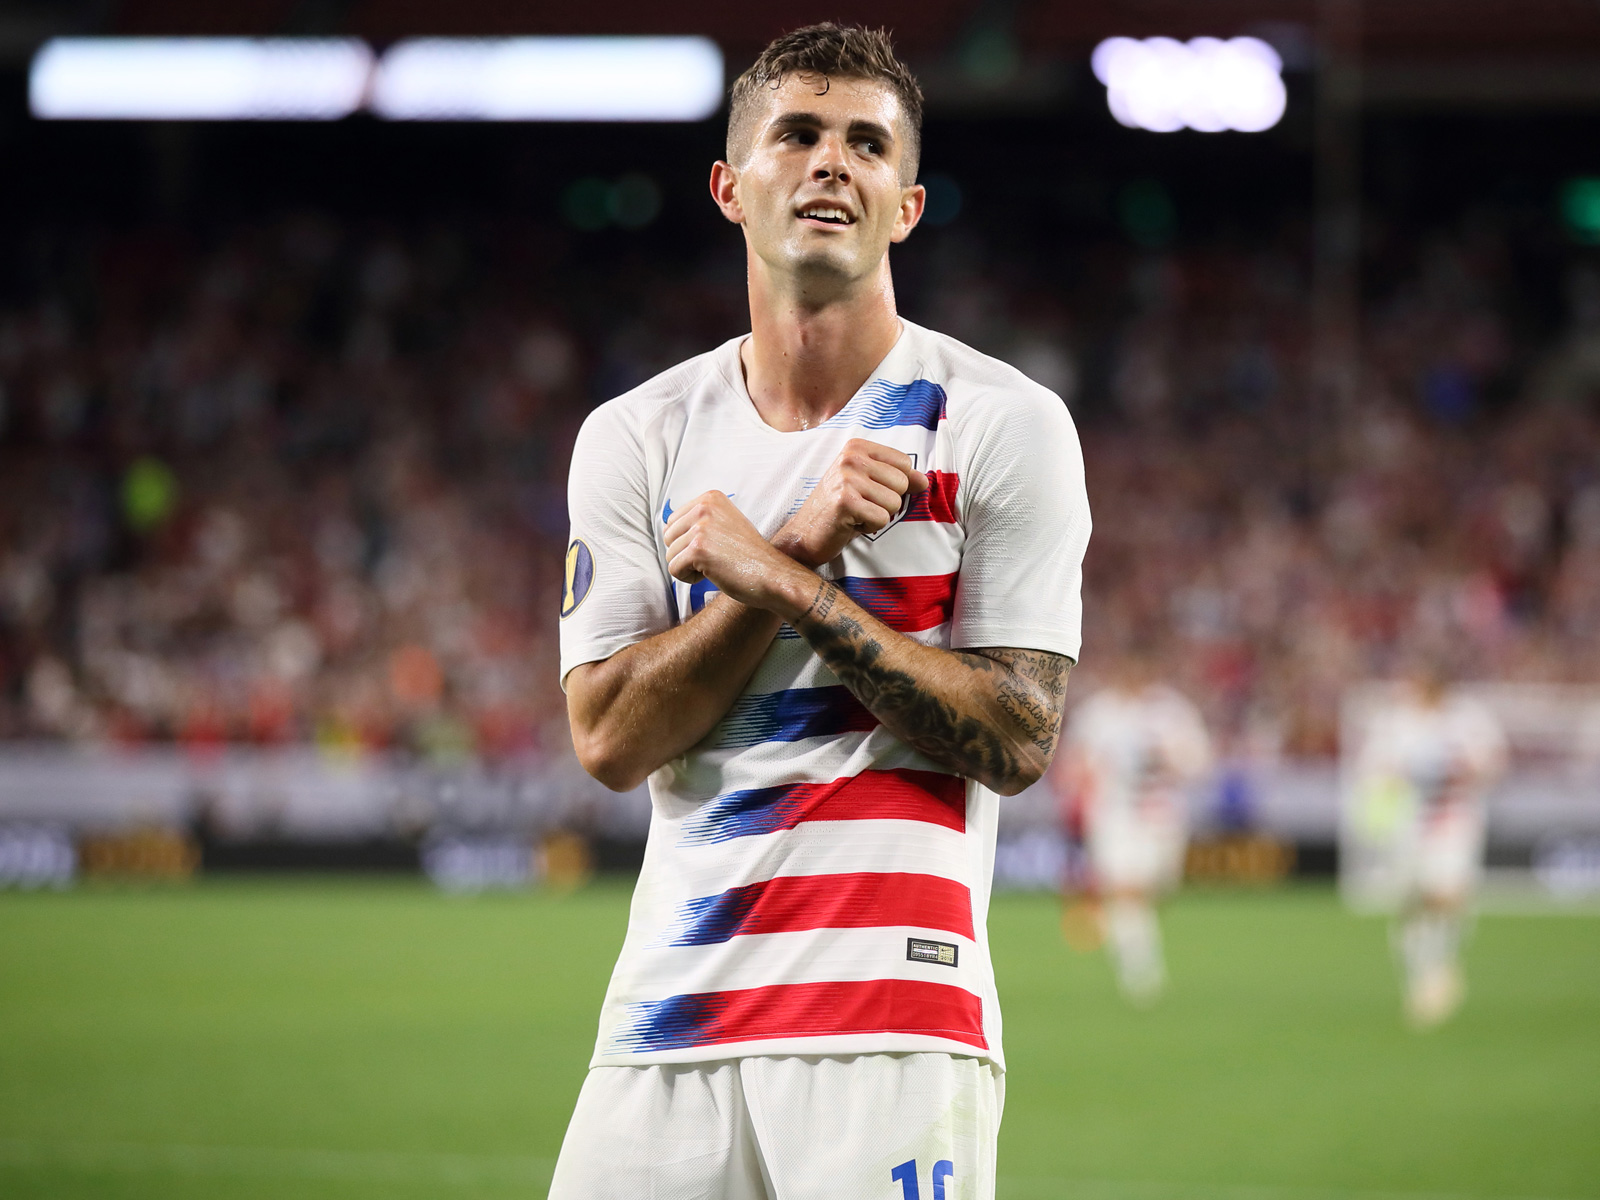 Christian Pulisic had a goal and two assists for the USMNT vs. Trinidad and Tobago